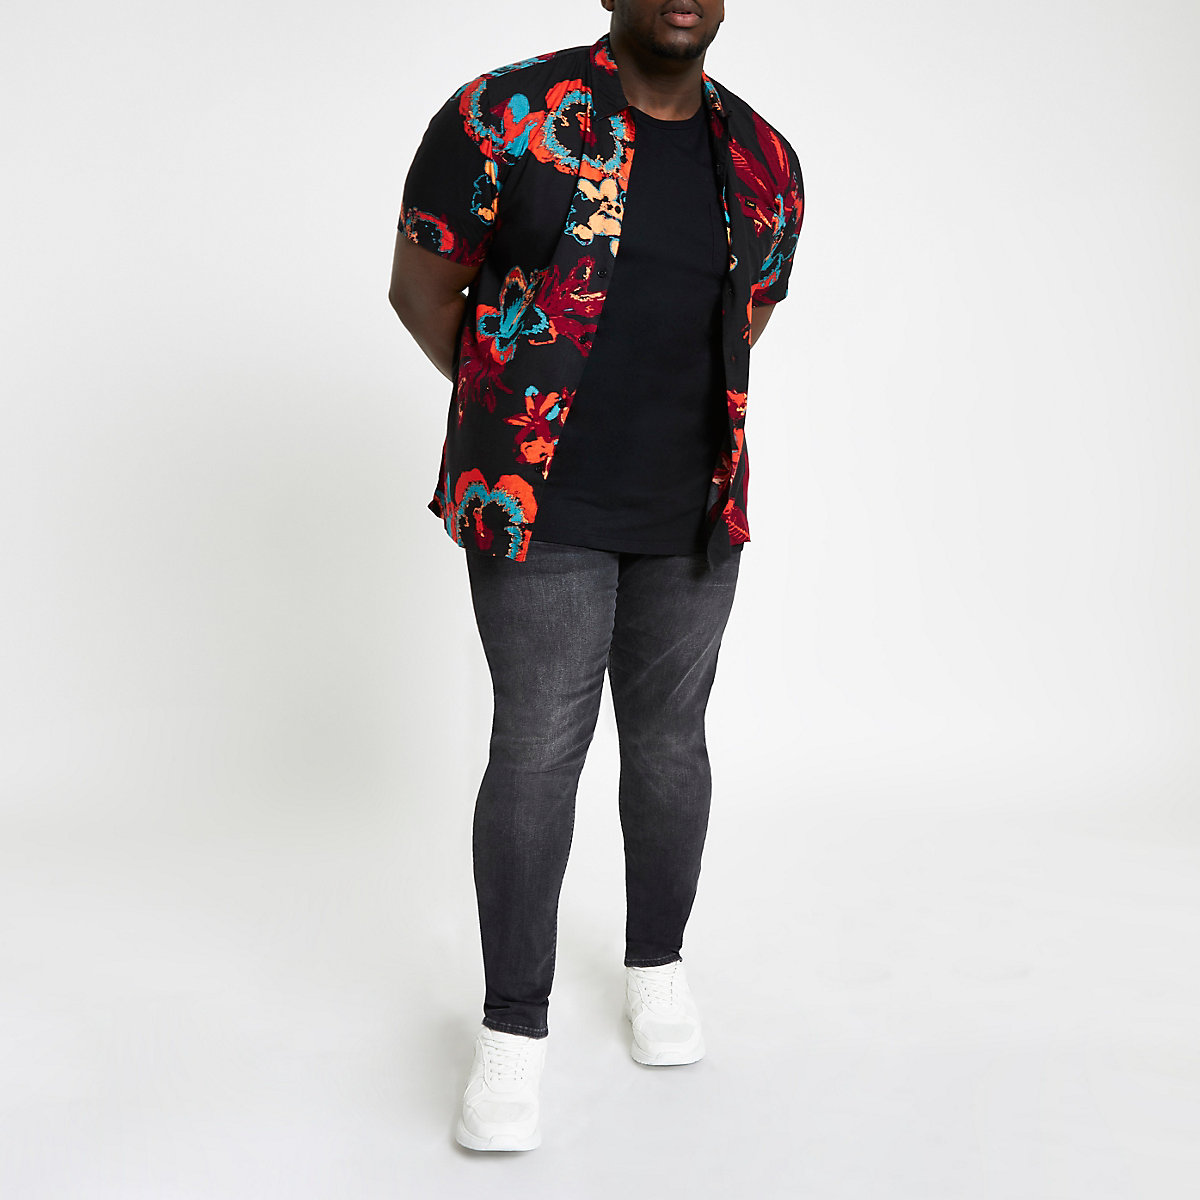 Lee Big and Tall black floral shirt